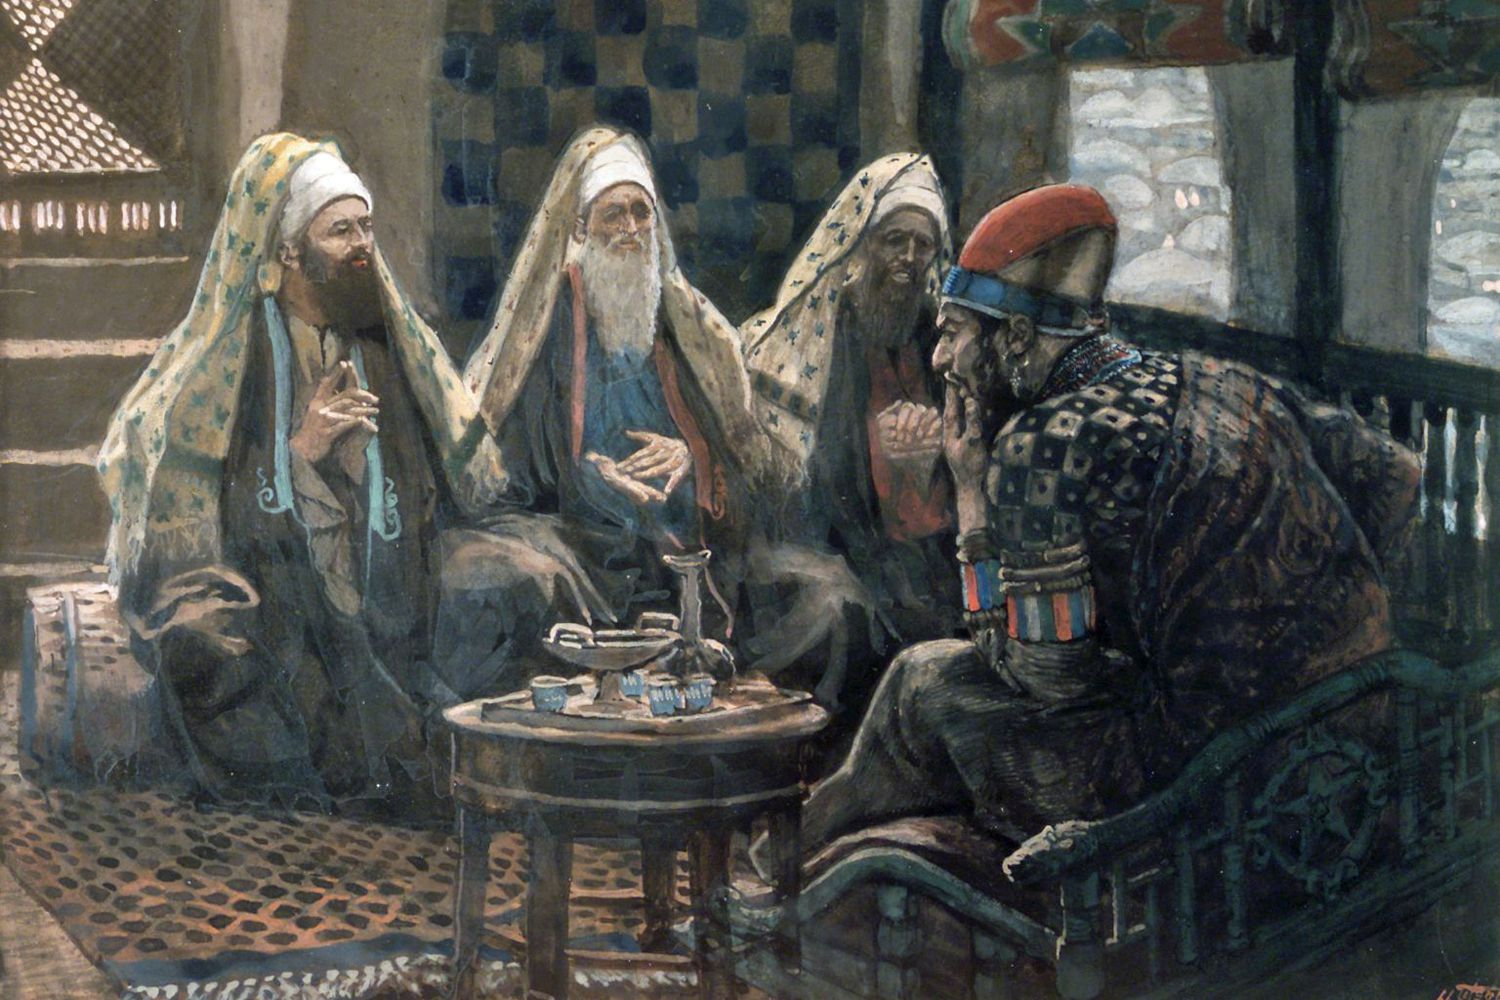 Herod the Great - Ruthless Ruler of the Jews